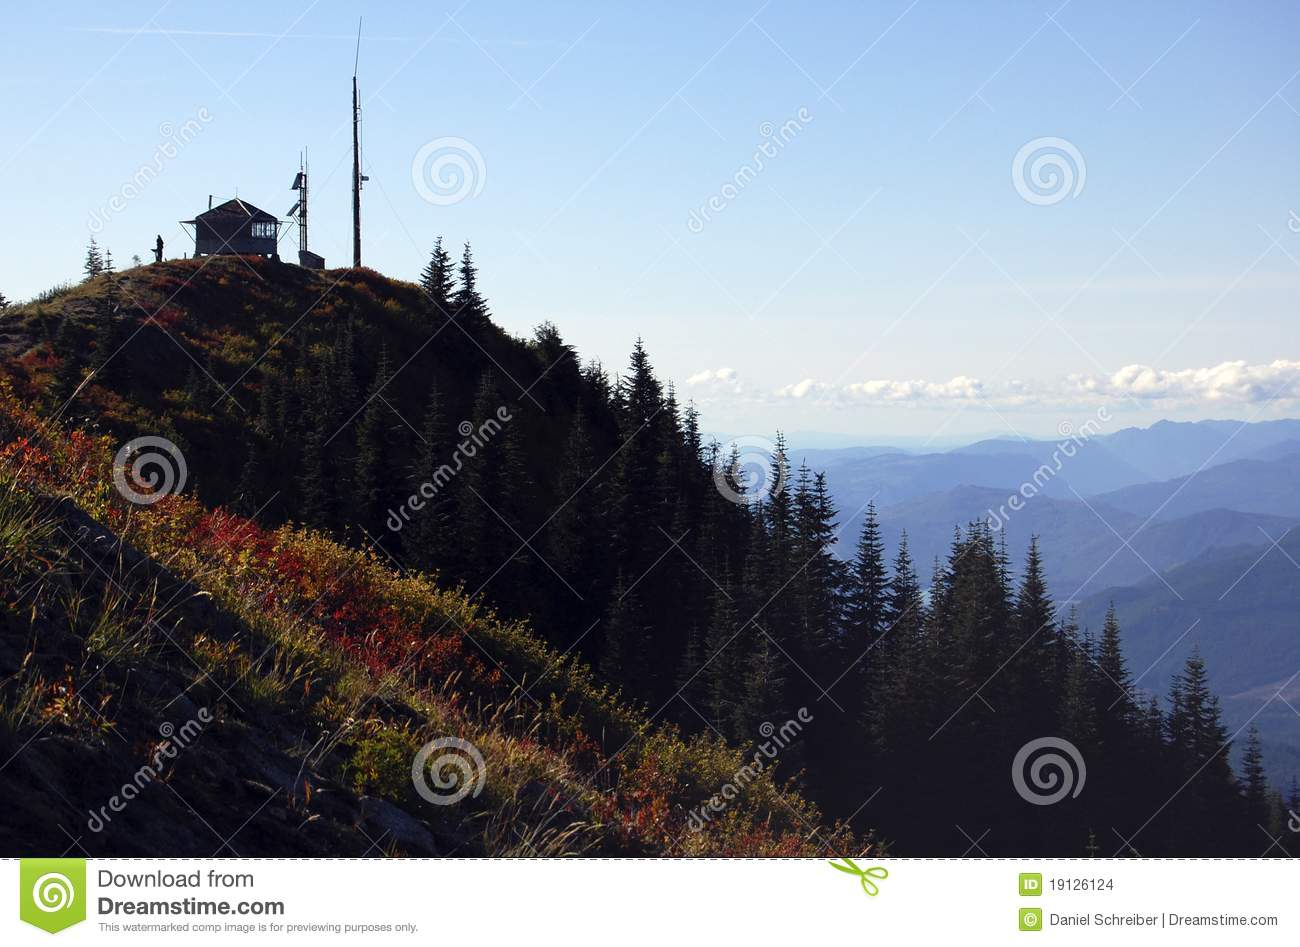 Burley (ID) United States  city photos gallery : Burley Mountain Fire Lookout, Washington state, Gifford Pinchot ...